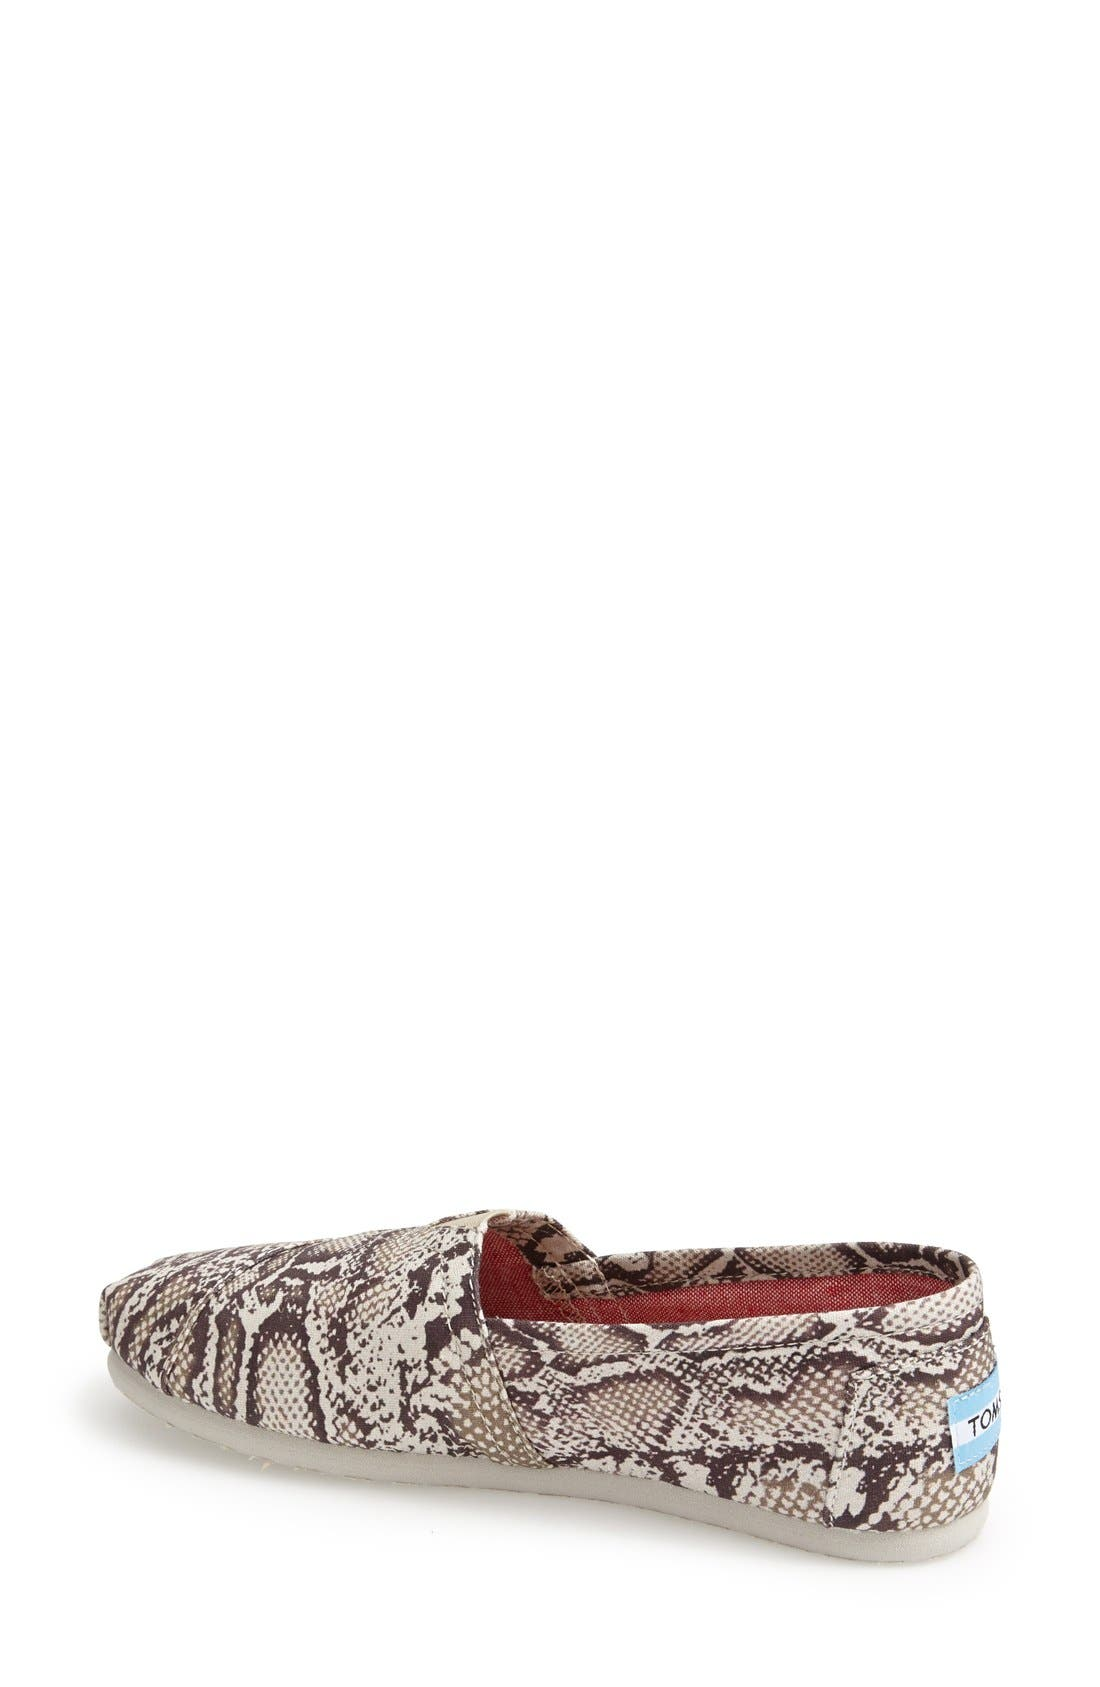 Alternate Image 2  - TOMS 'Classic - Snake' Slip-On (Women)